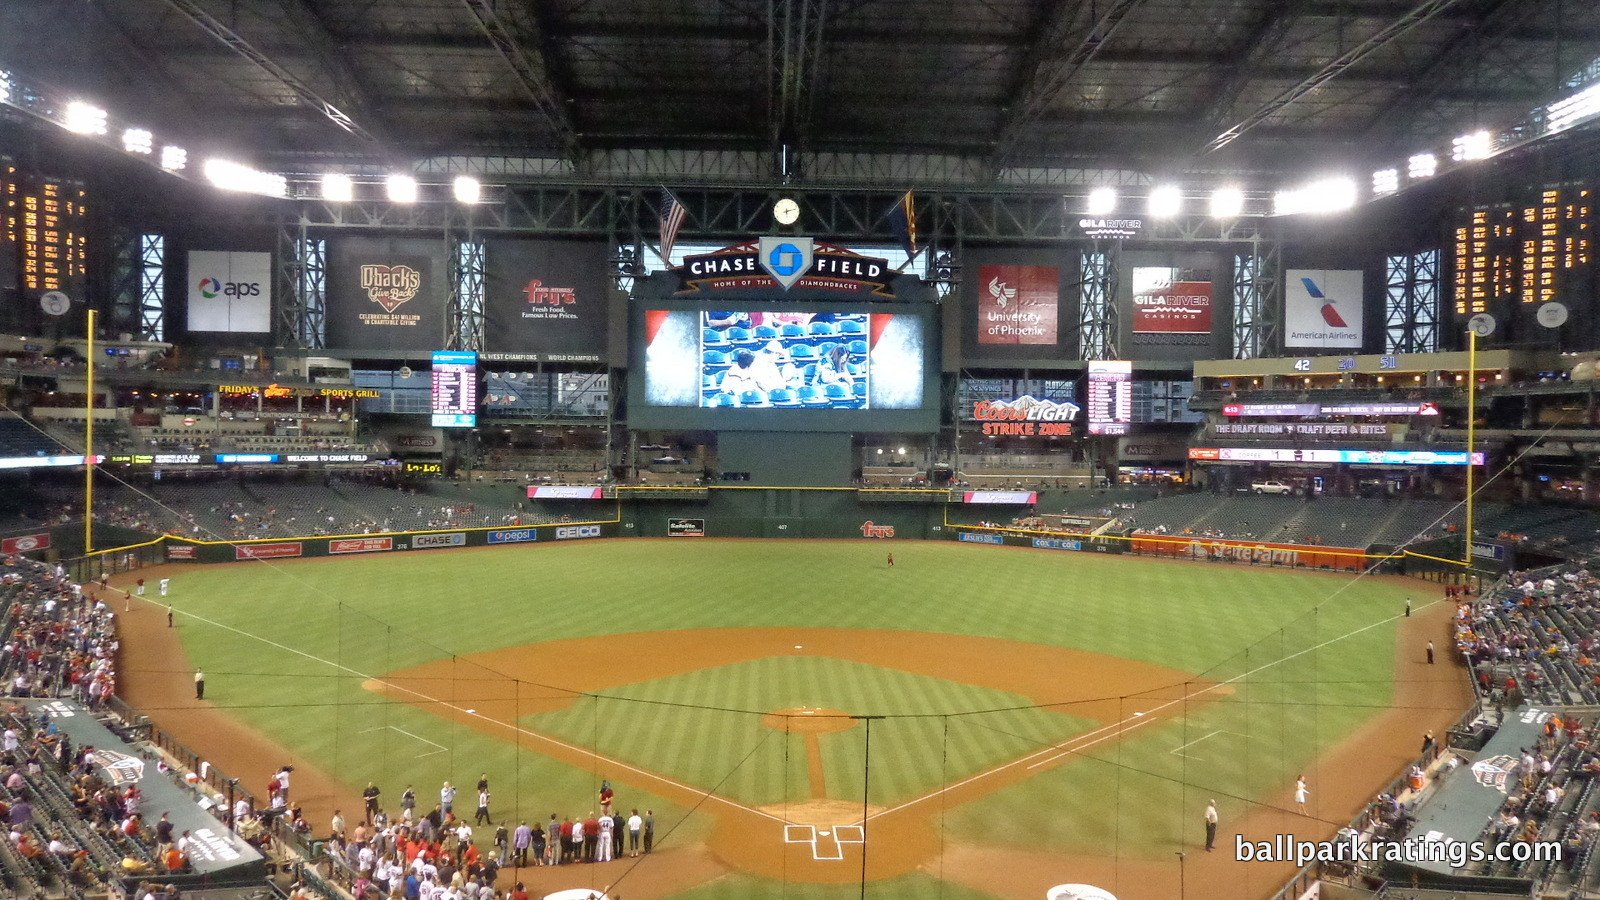 Chase Field view